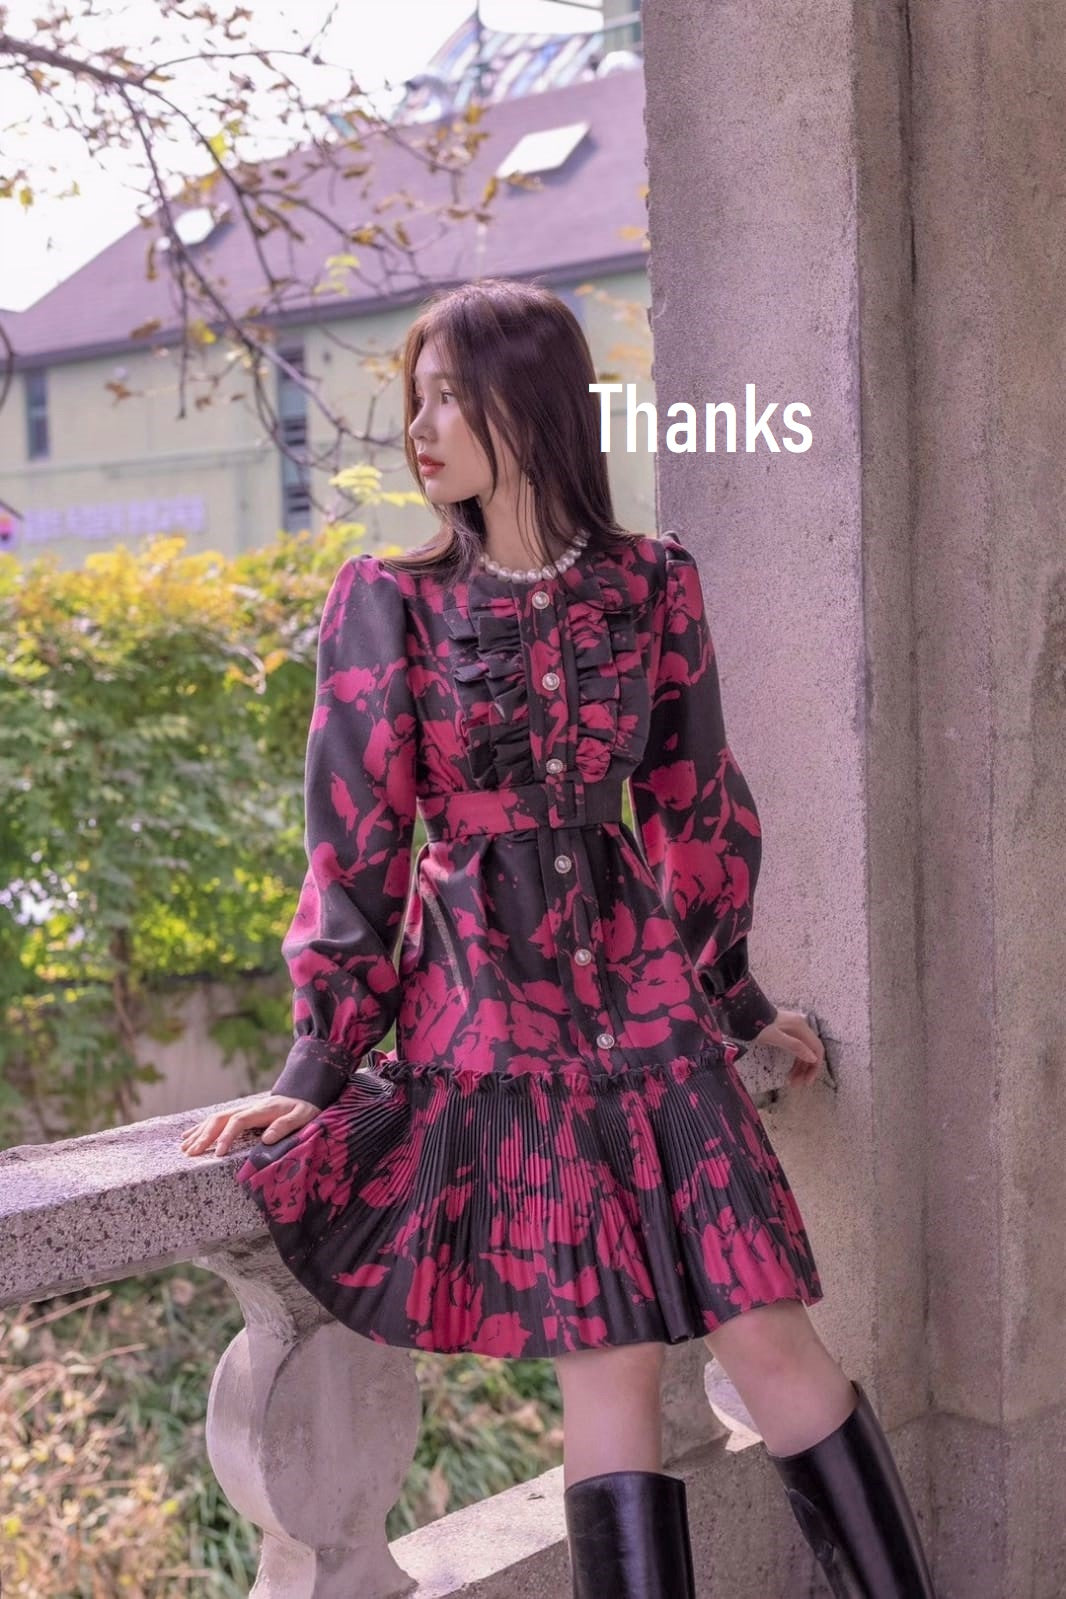 #Thanks #Dress